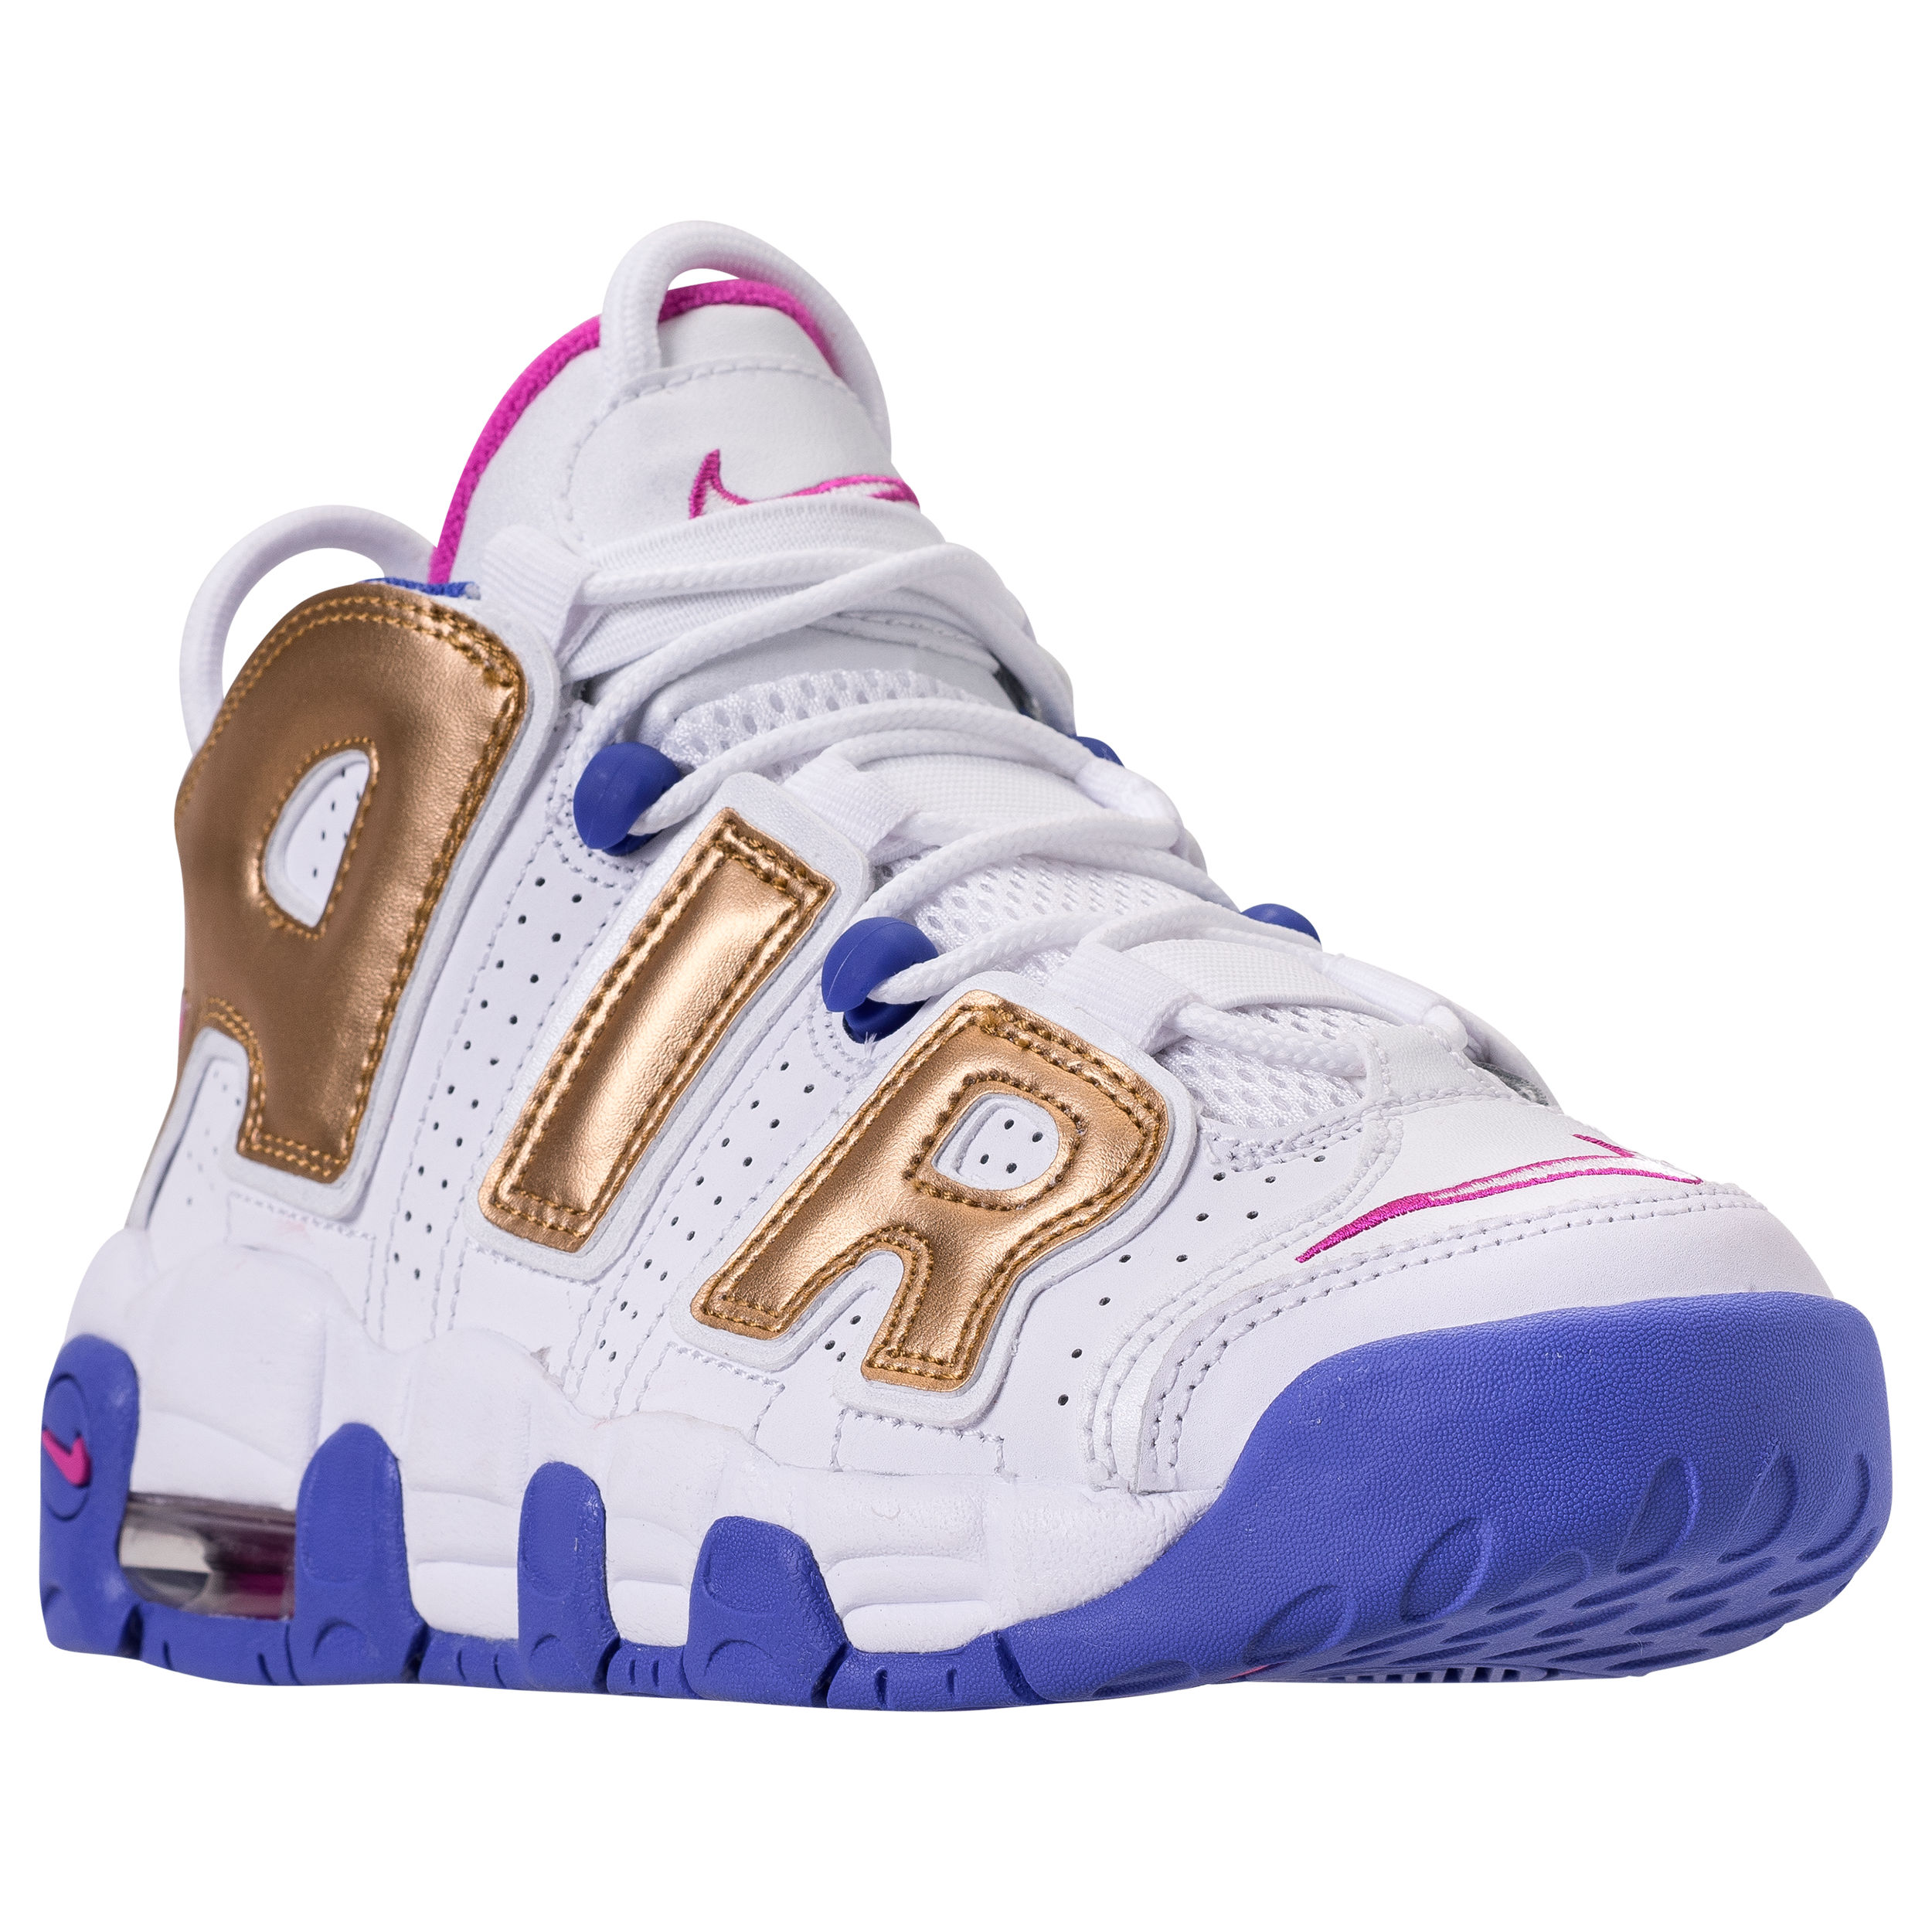 new styles 98a4f 0803a ... where to buy nike air more uptempo gs whitefuscia blastmetallic  goldracer blue 1 78b15 a2737